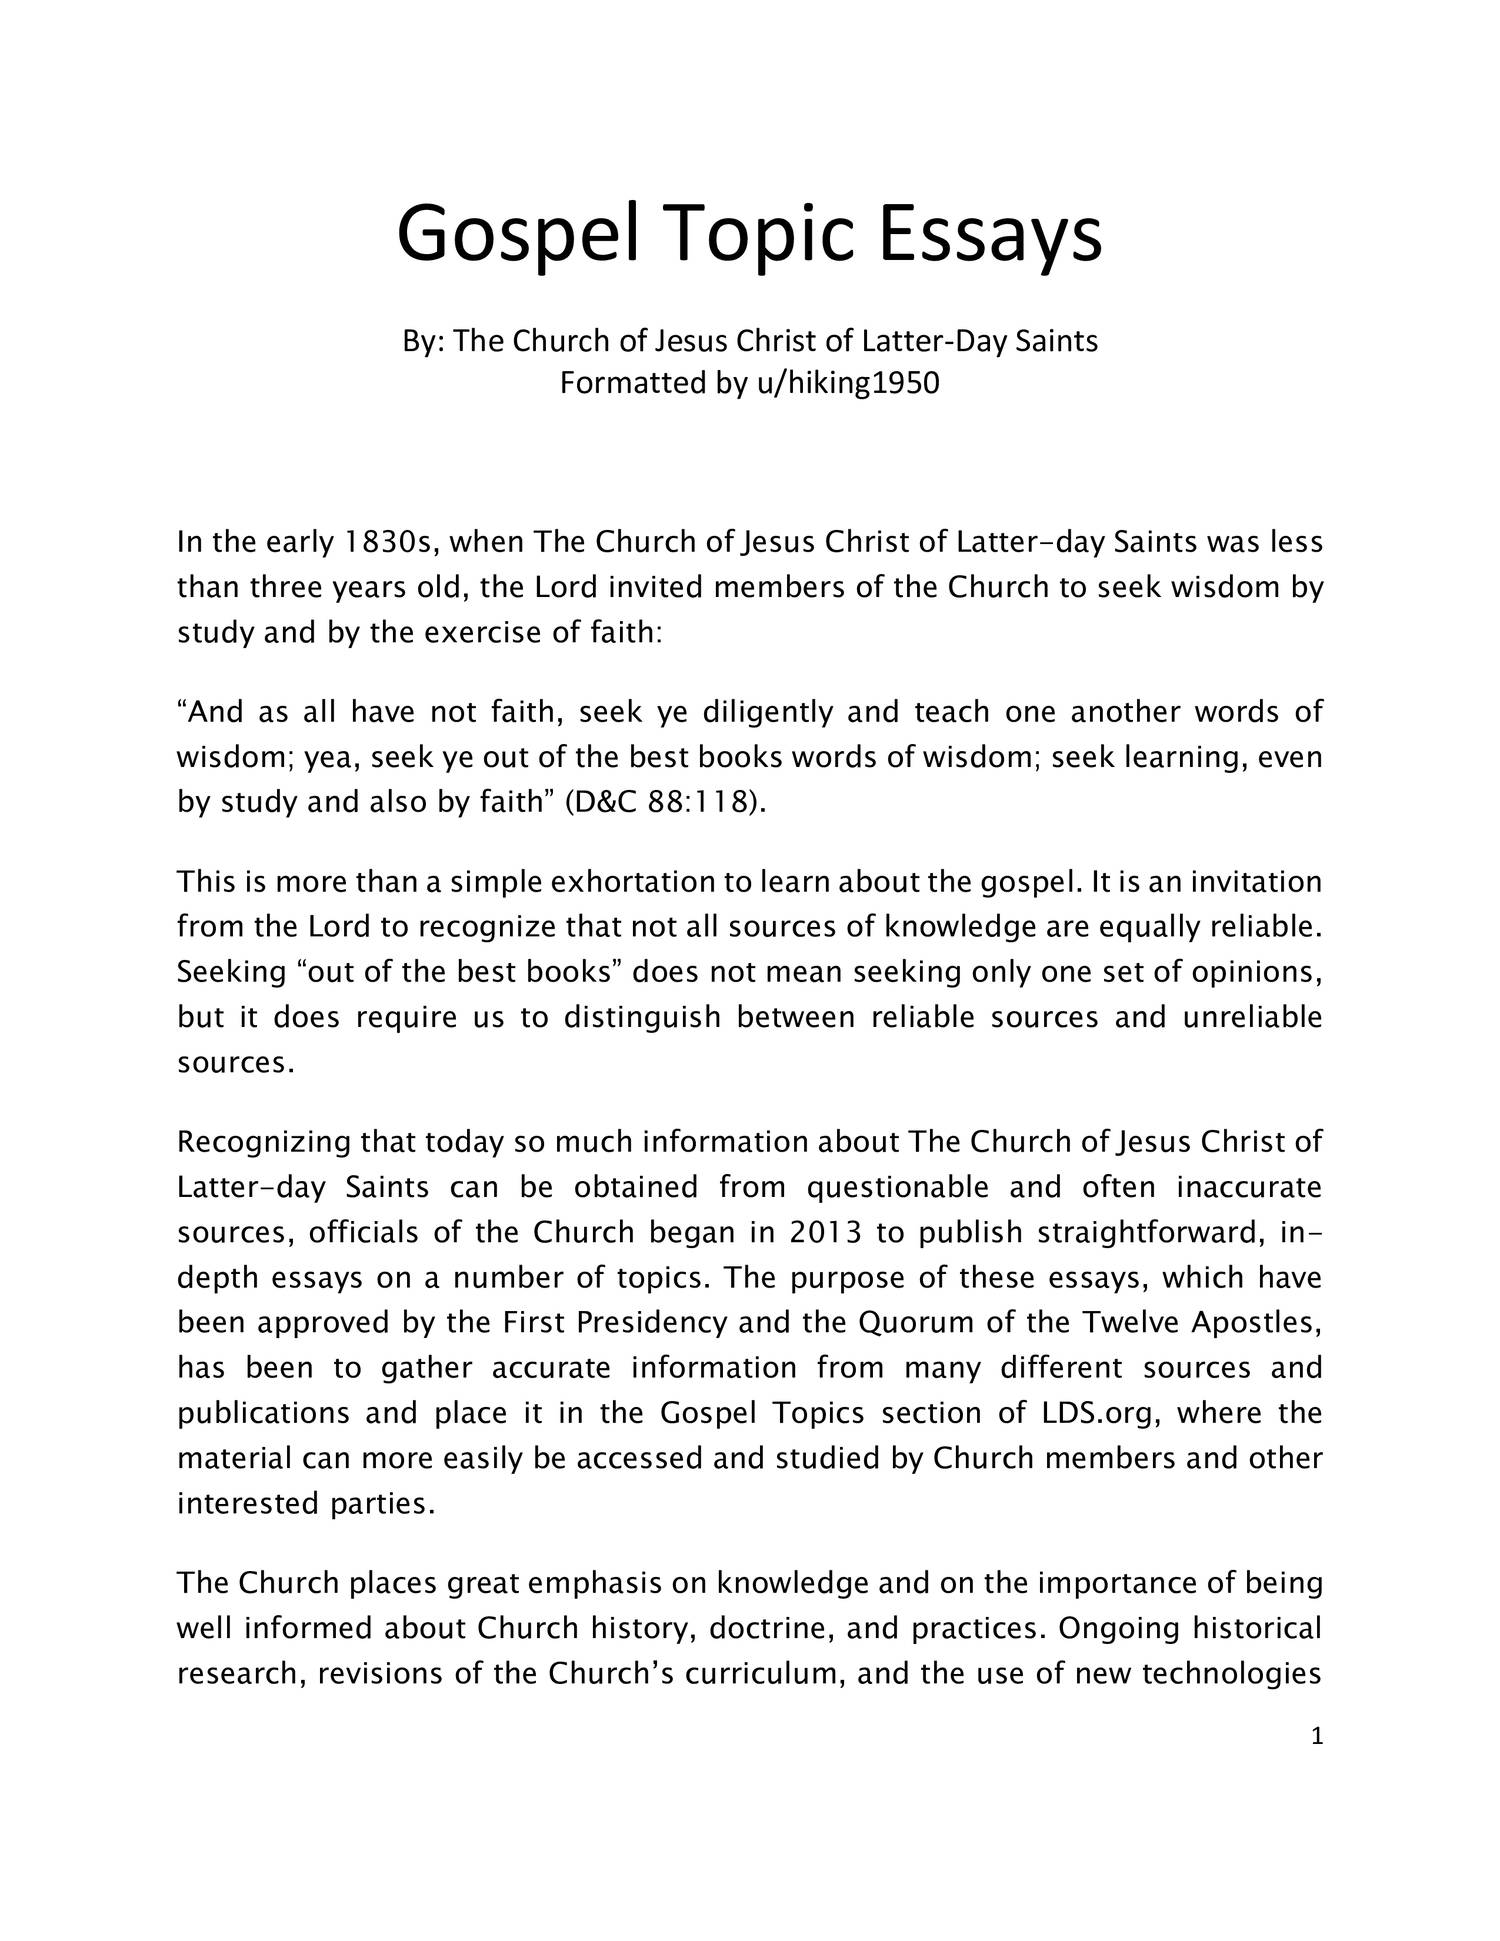 017 Gospel Topic Essays Topics Essay Outstanding Pdf Plural Marriage Becoming Like God Full